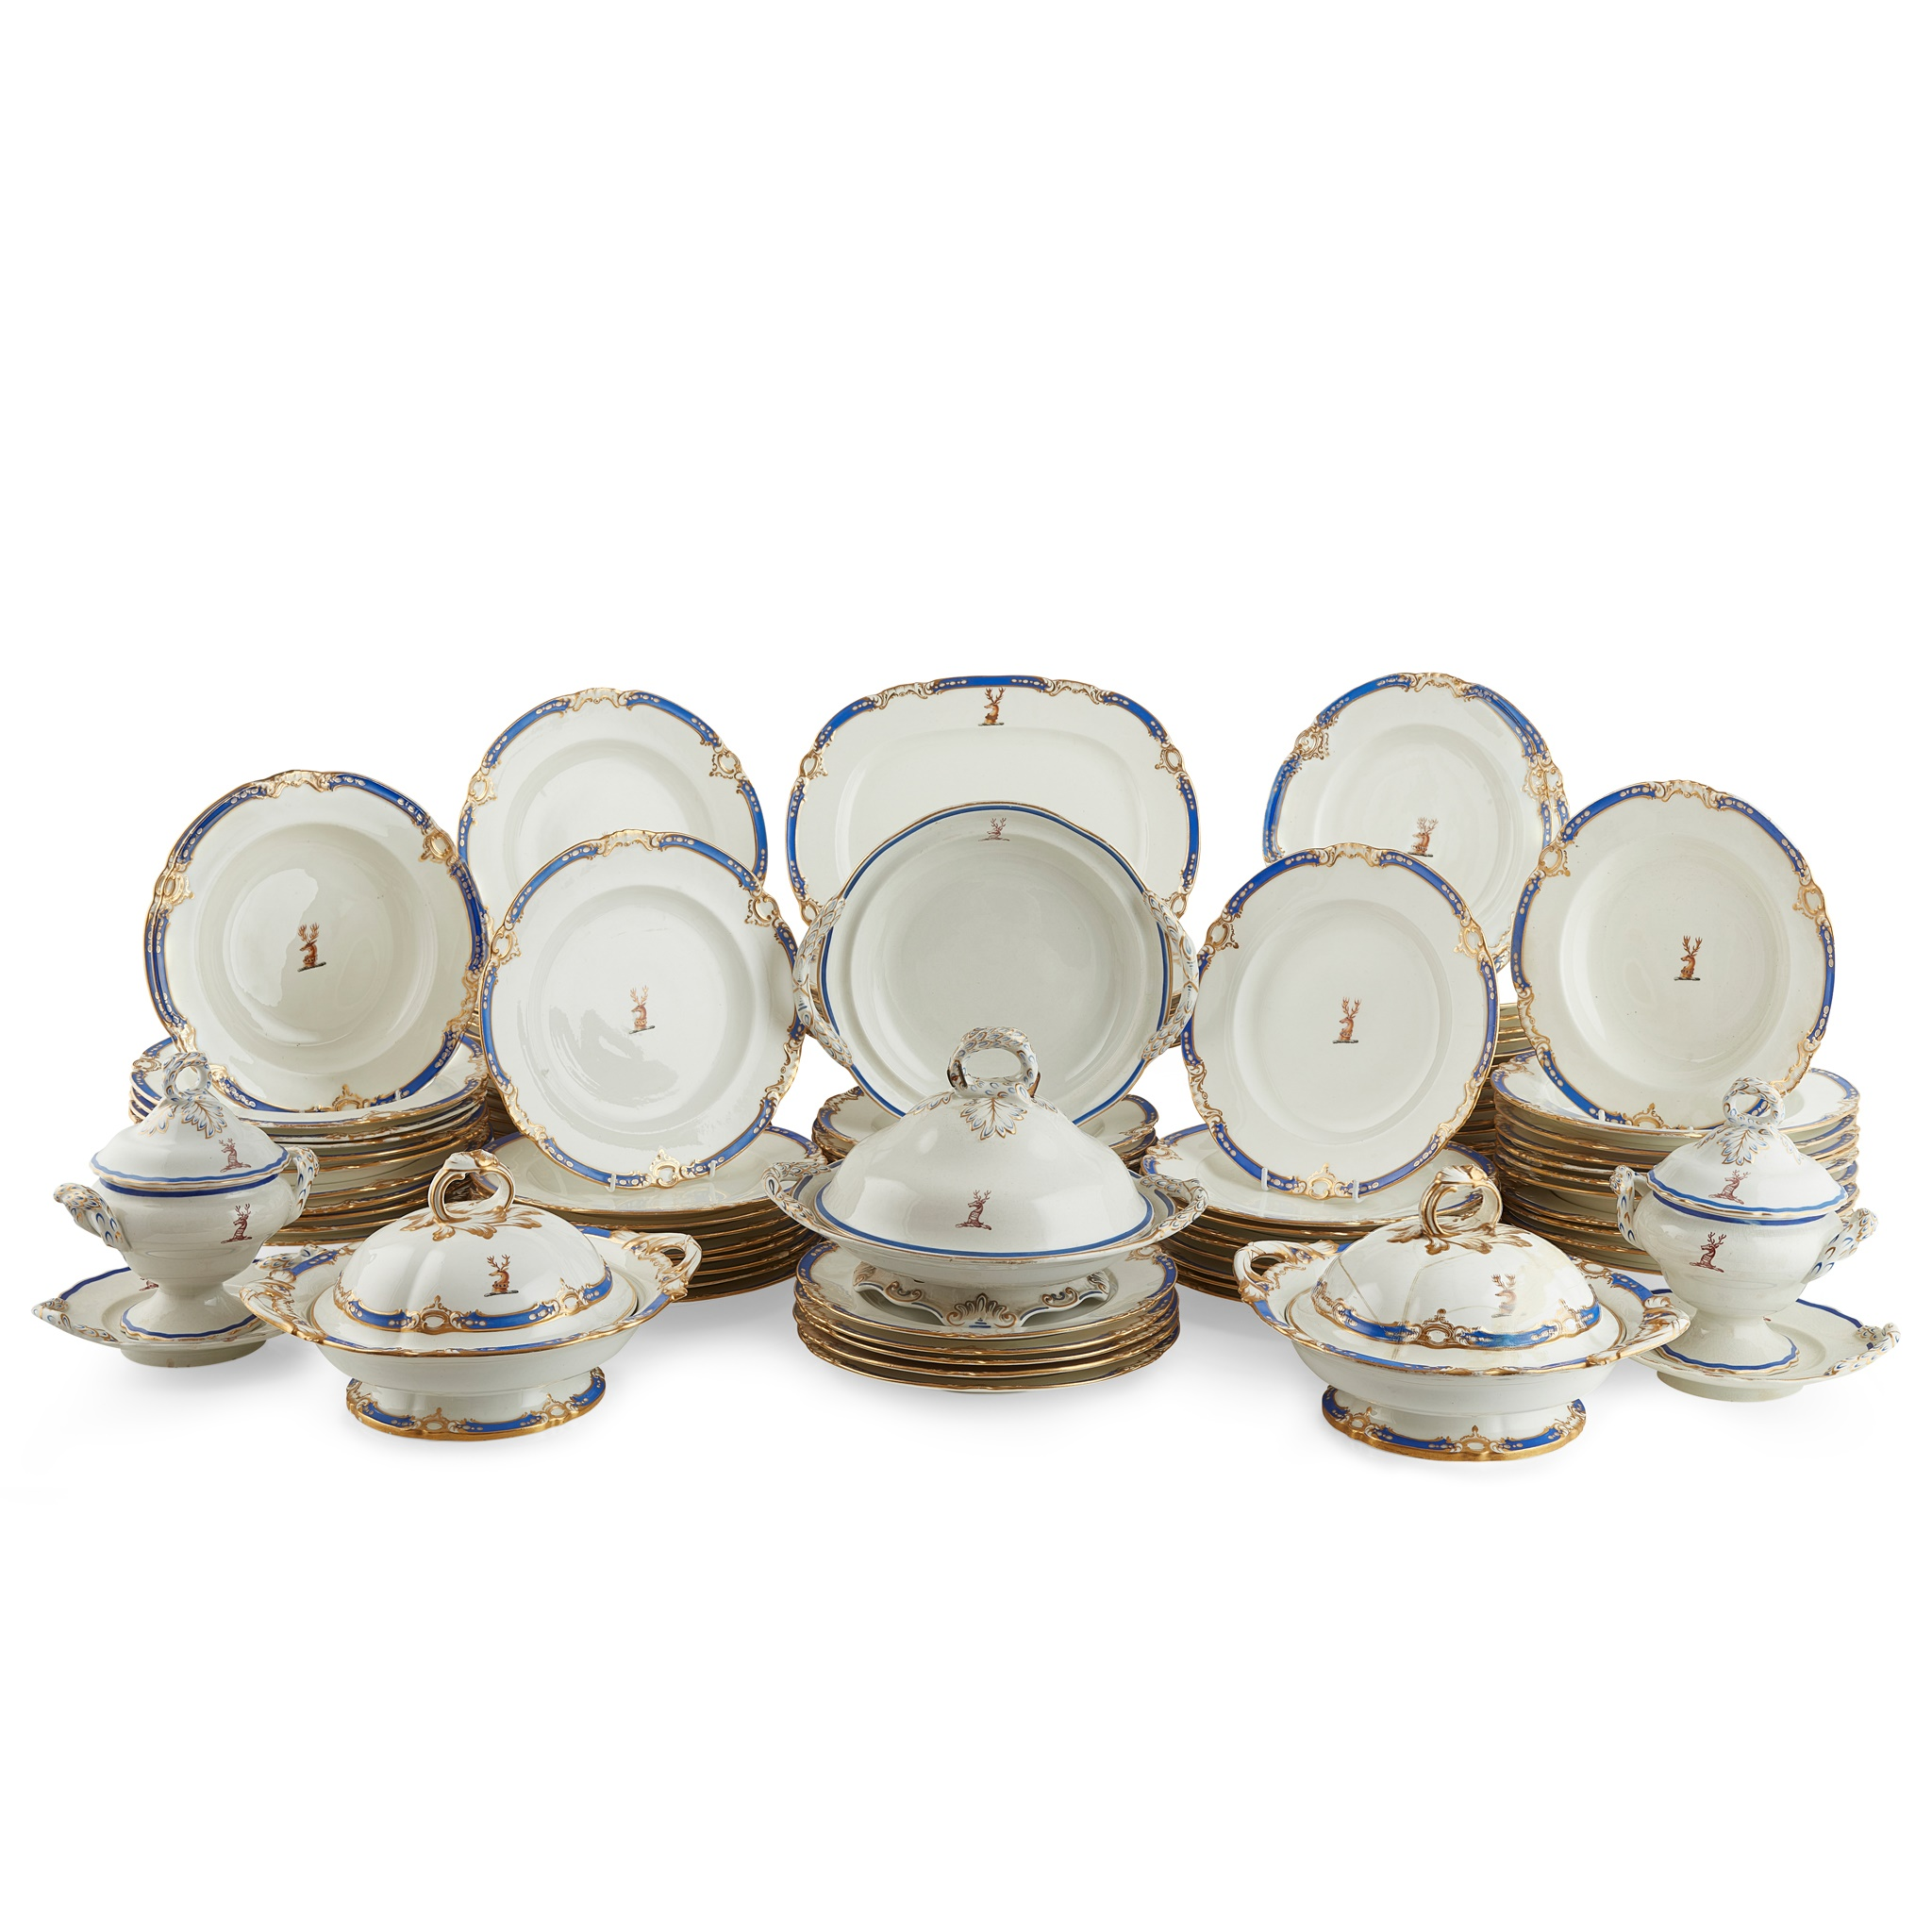 EXTENSIVE ENGLISH PORCELAIN PART DINNER SERVICE, BEARING THE FAMILY CREST FOR LLOYD EARLY 19TH